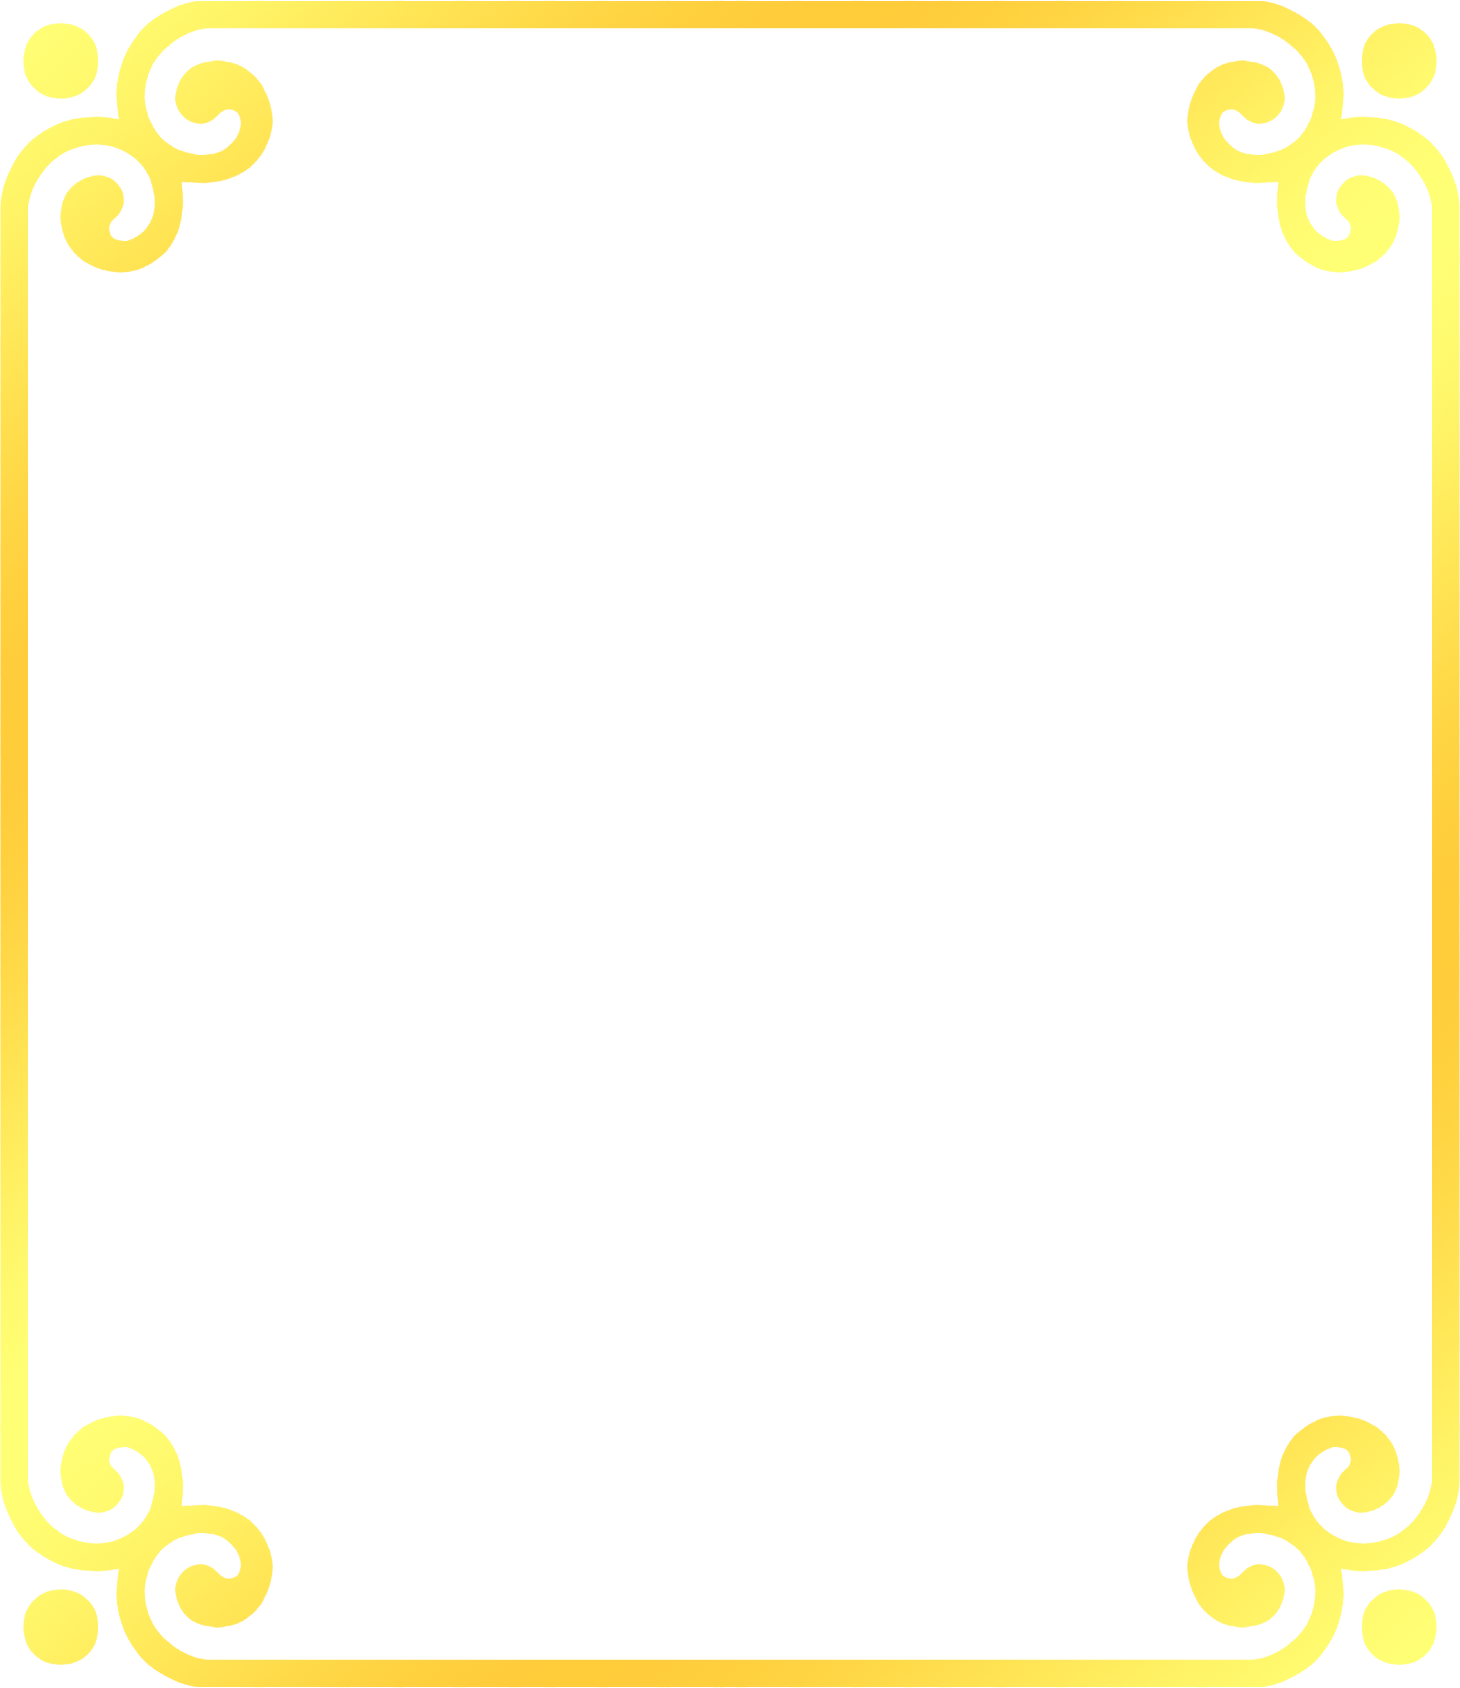 Yellow border png. Area pattern golden frame